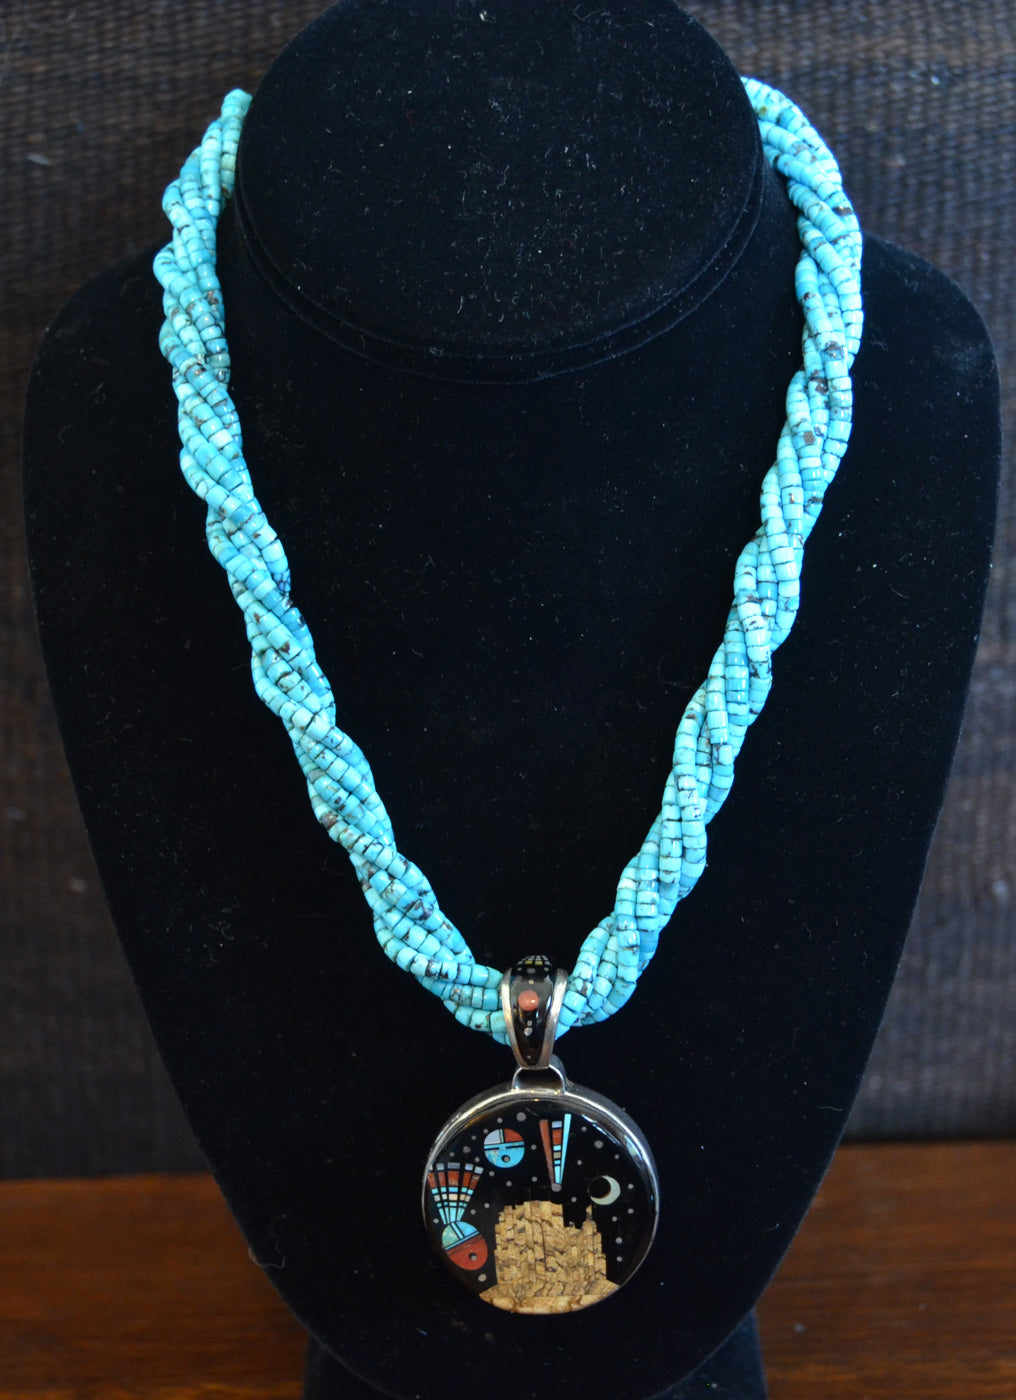 Native American Jewelry : Navajo : Necklace - Turquoise beads, Night Sky Over Shiprock 2 sided pendant : Ervin P Tsosie : NAJ-N21 - Getzwiller's Nizhoni Ranch Gallery